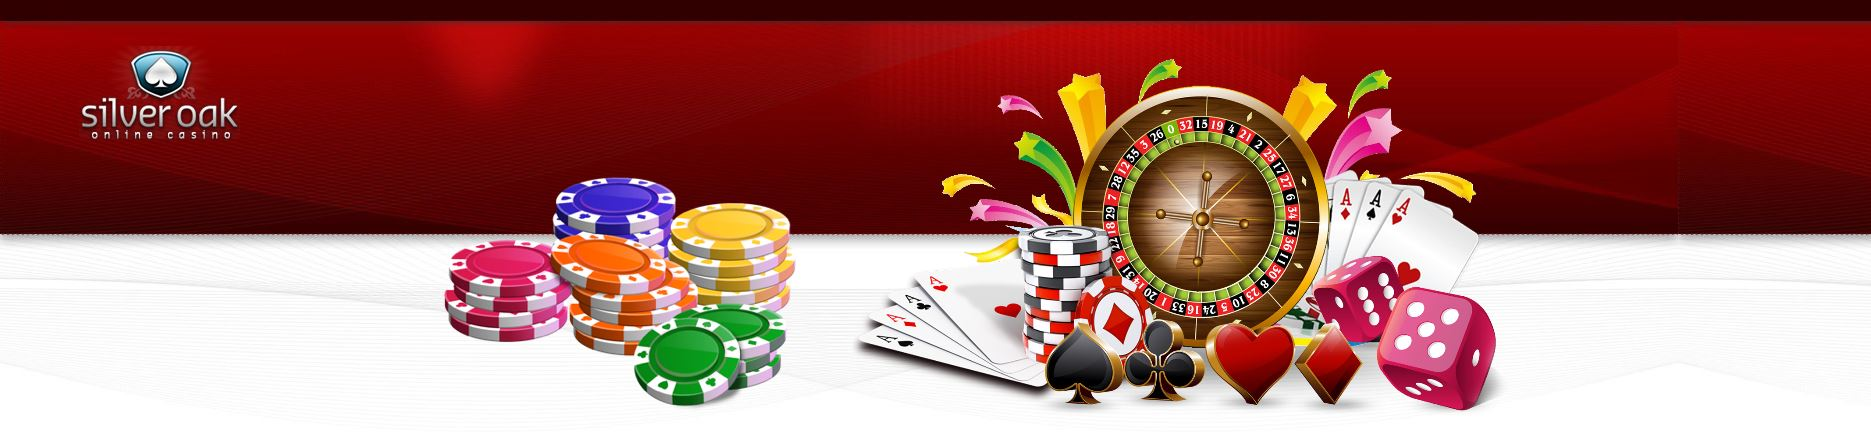 SilverOak Online Casino Review